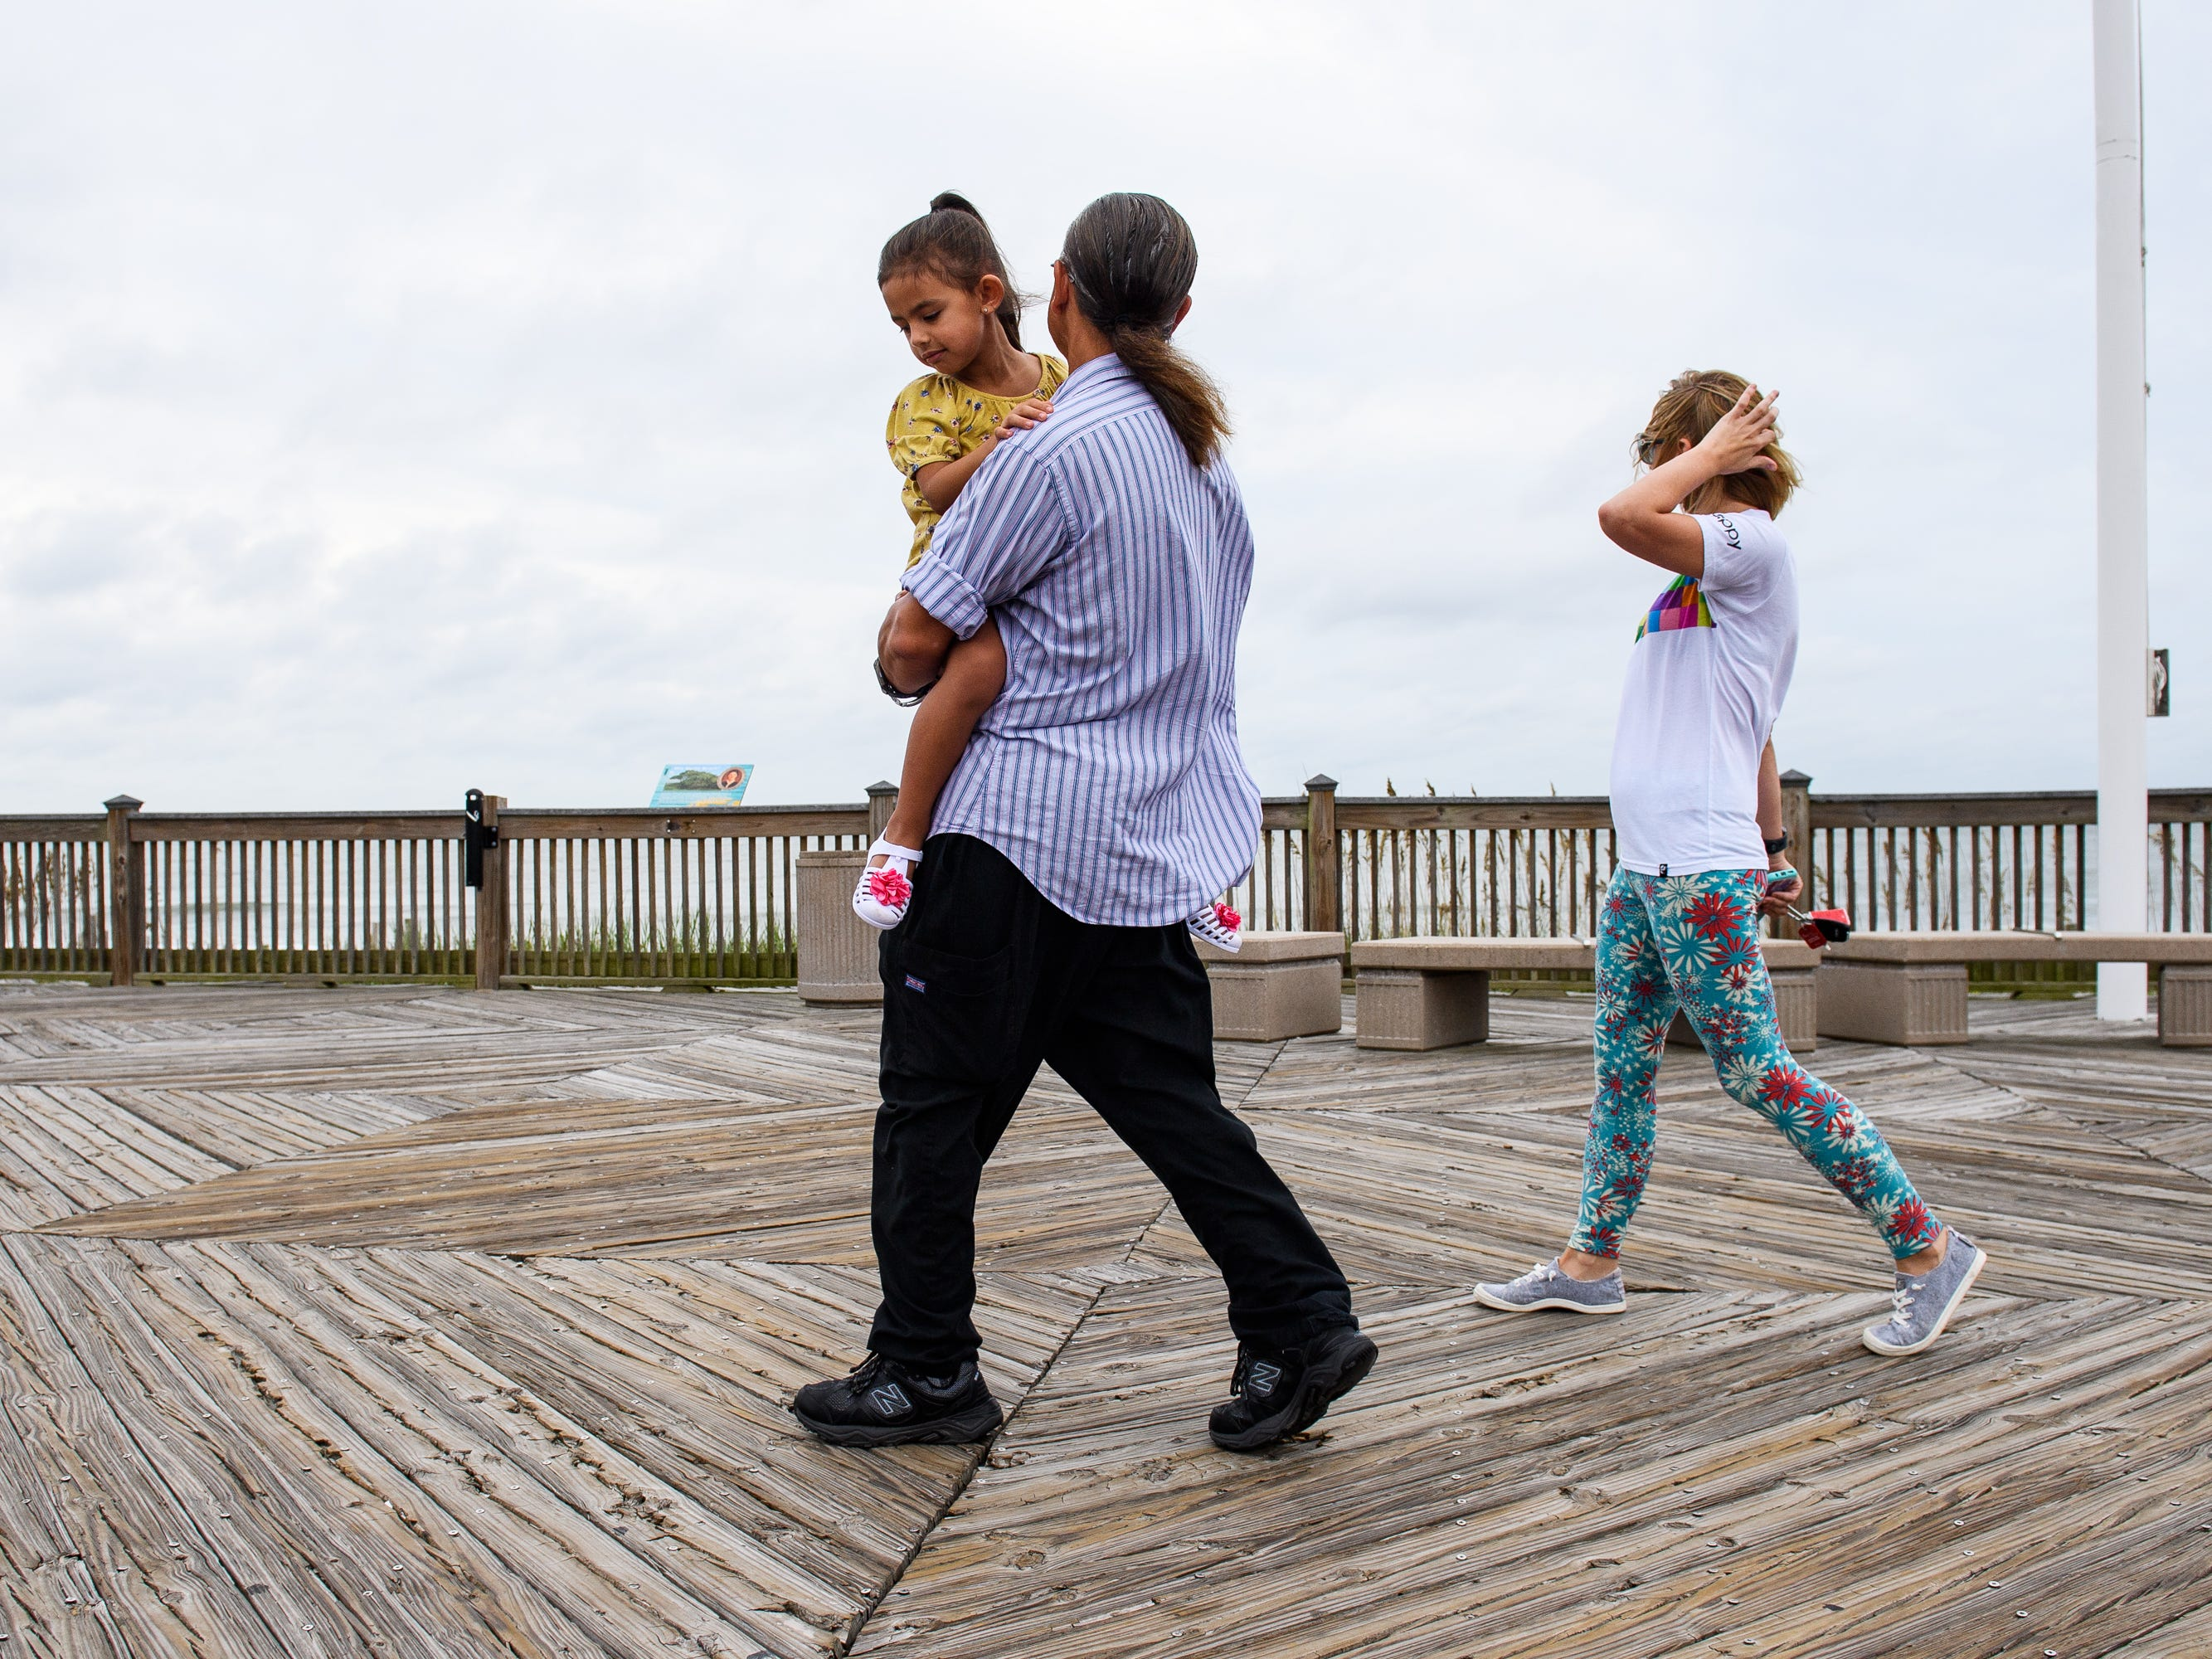 Daniel Dillion walks down the Myrtle Beach Boardwalk and Promenade with his daughter Alexis, 5, and wife Mary on Thursday, Sept. 13, 2018. Dillon said he and his family chose to stay for Hurricane Florence.